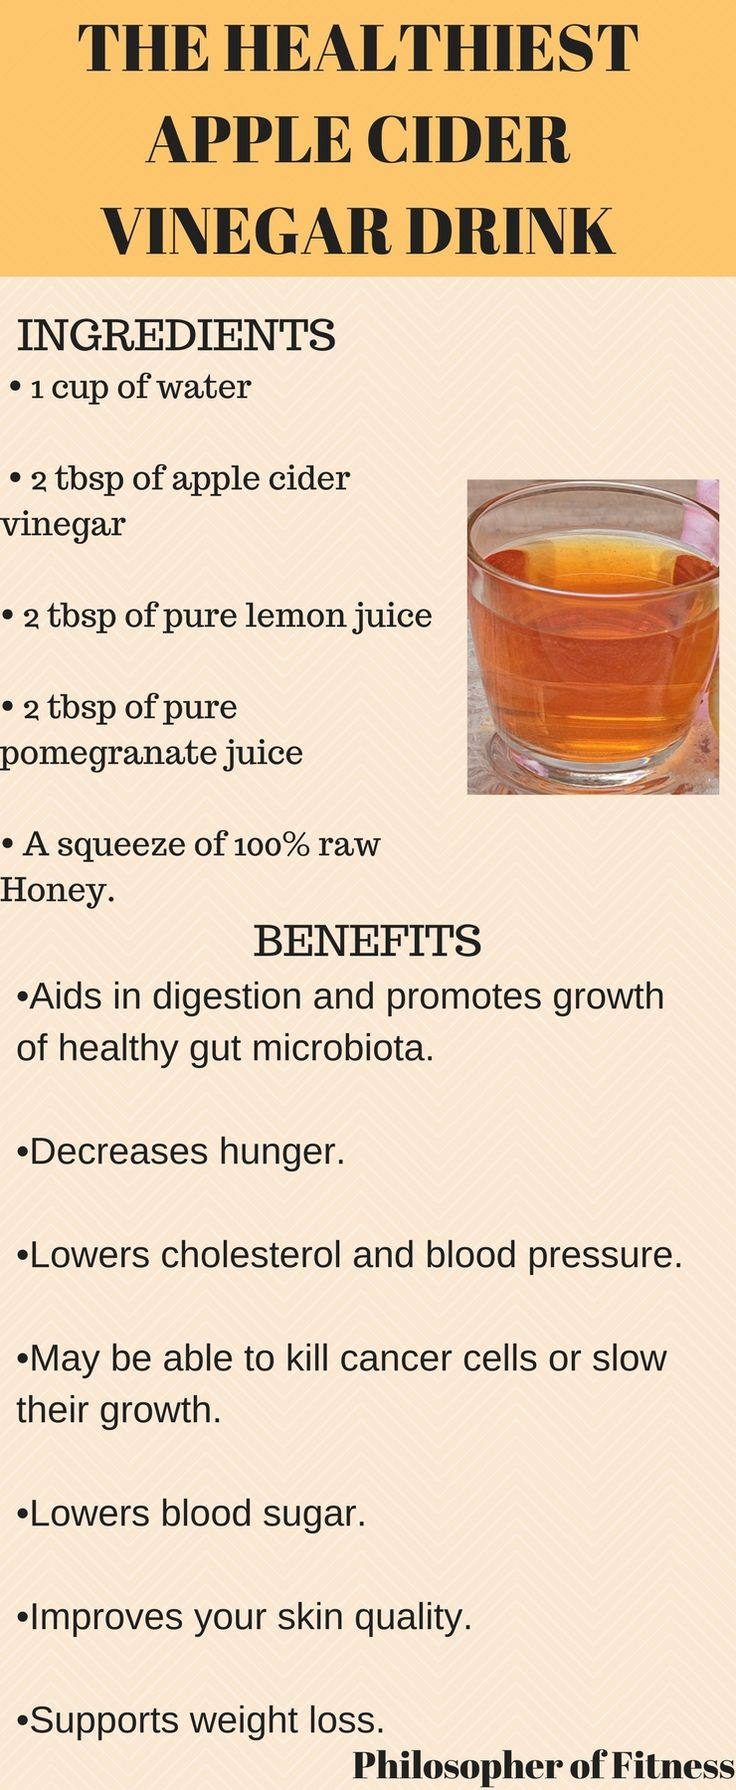 Try The Healthiest Apple Cider Vinegar Drink! Click For More Information and Benefits of This Drink.